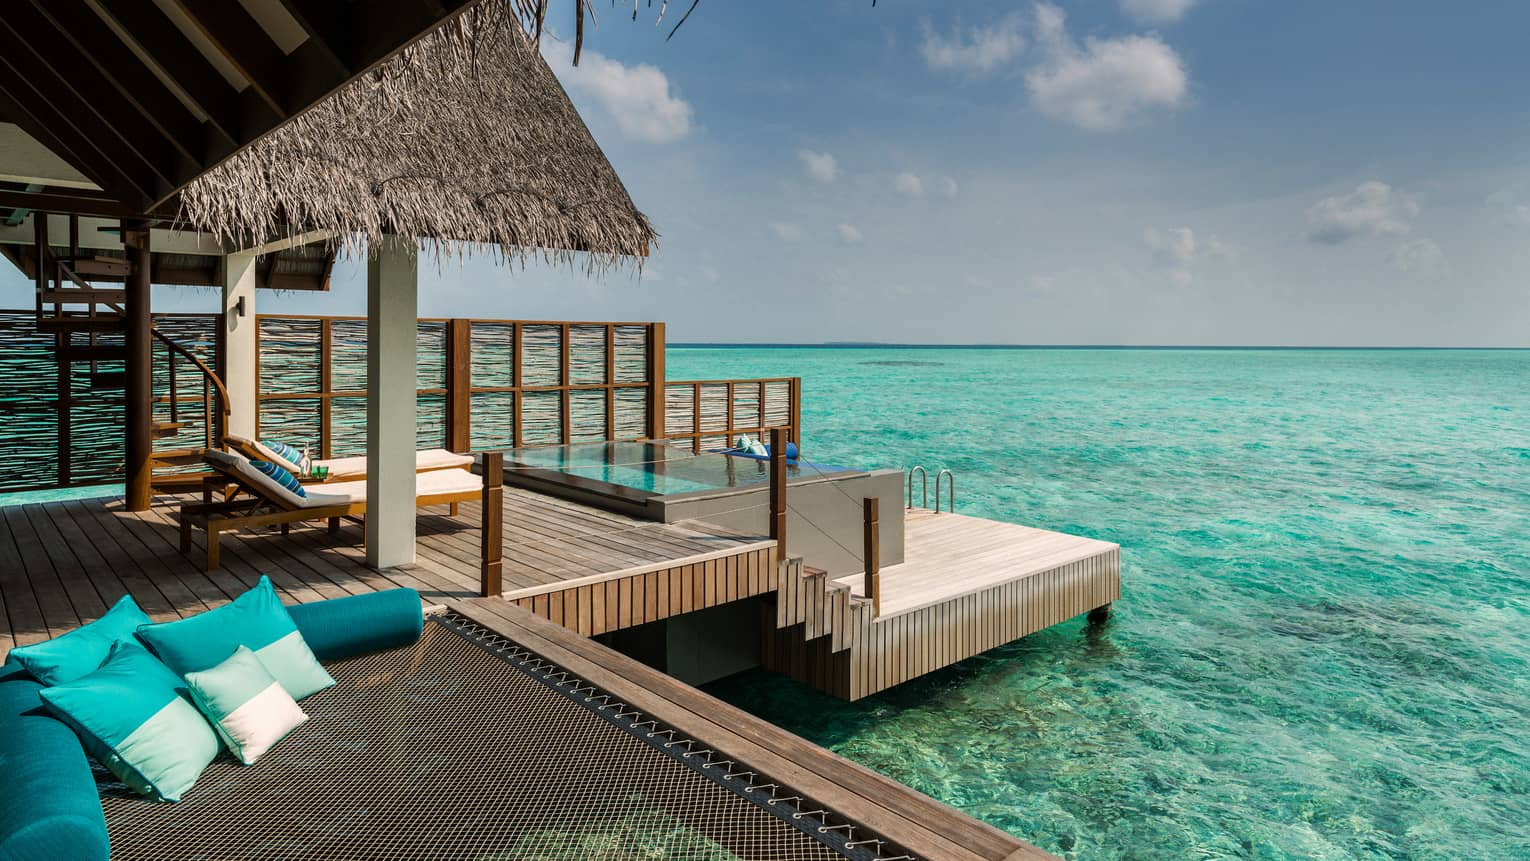 Tiered deck, lounge chairs under thatched roof on overwater villa